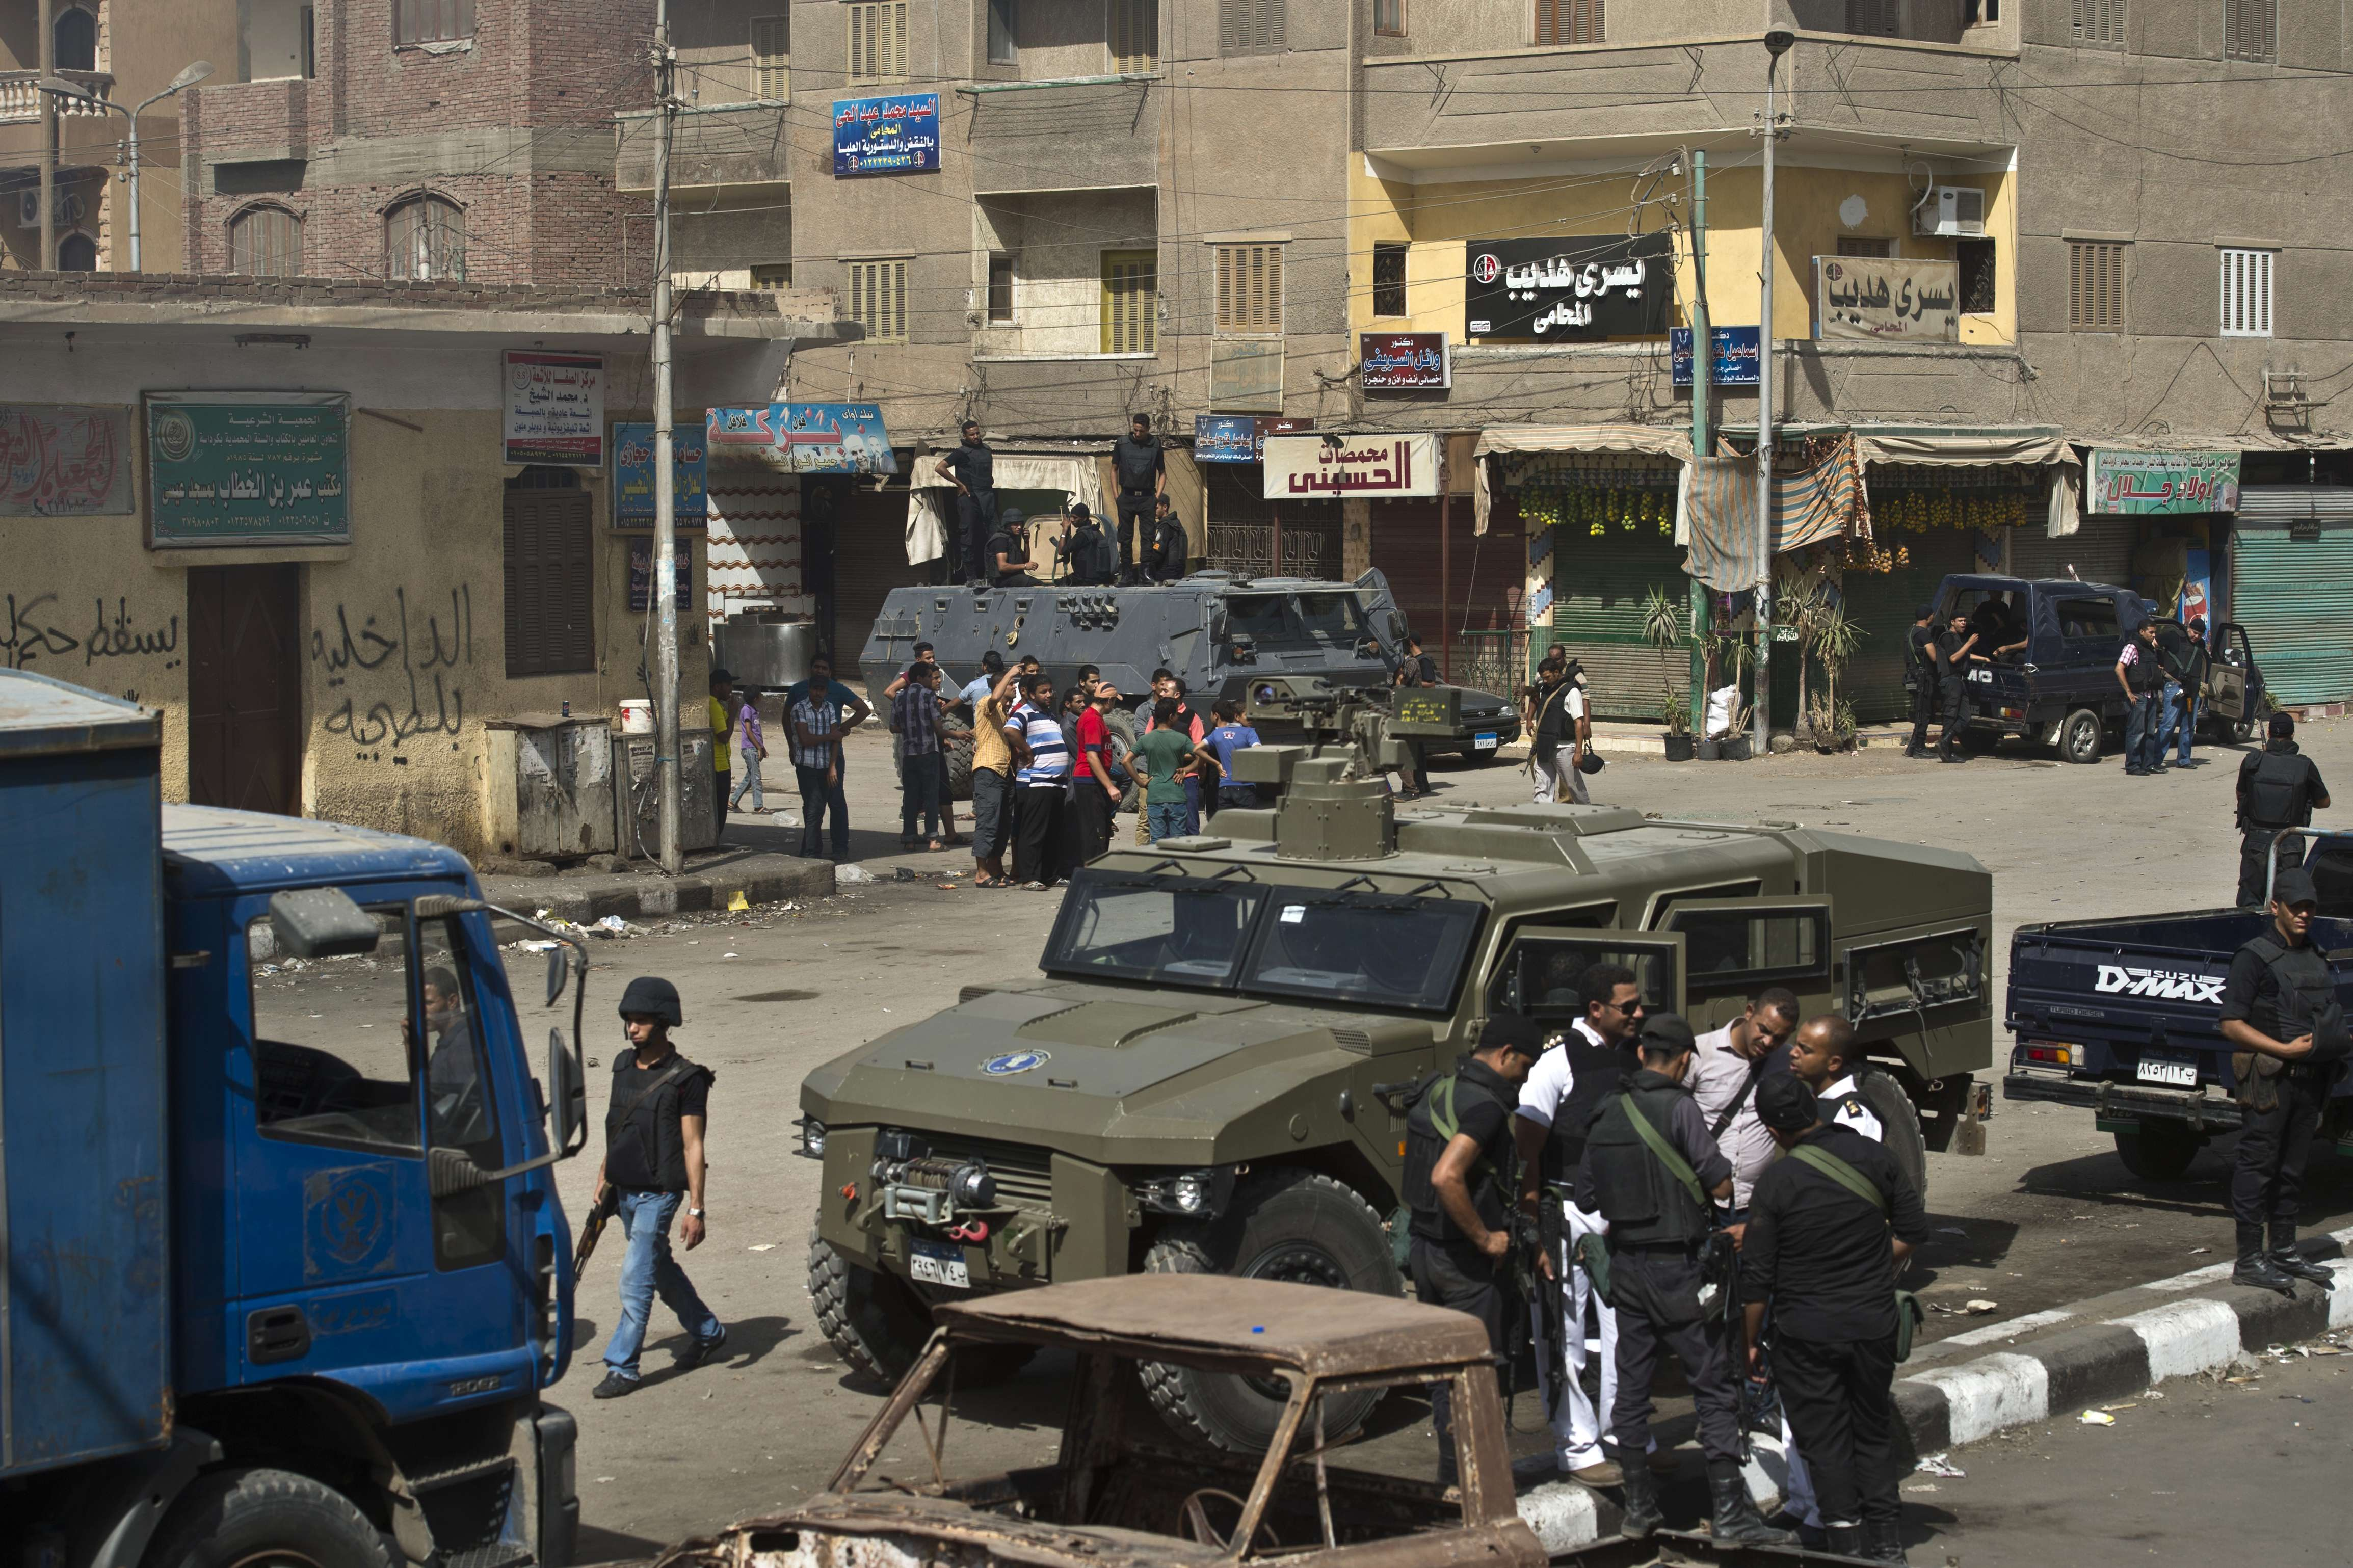 Egyptian armed policemen are deployed in a street during a raid in the village of Kerdassah on the outskirts of Cairo, on September 19, 2013. (AFP Photo)